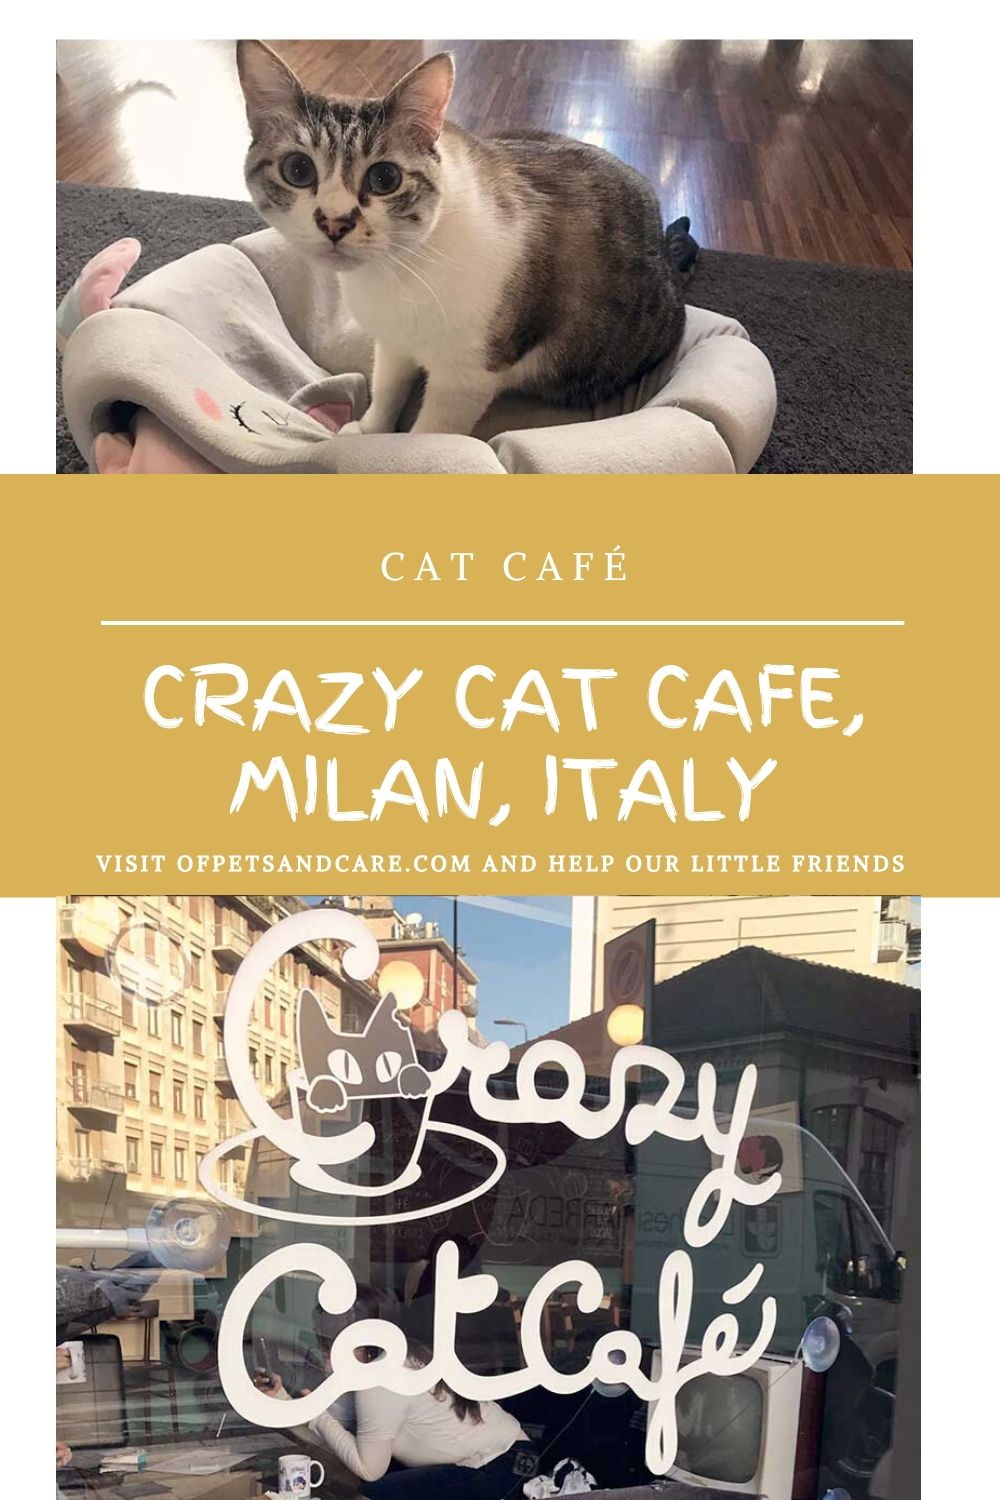 Crazy Cat Cafe in Milan,